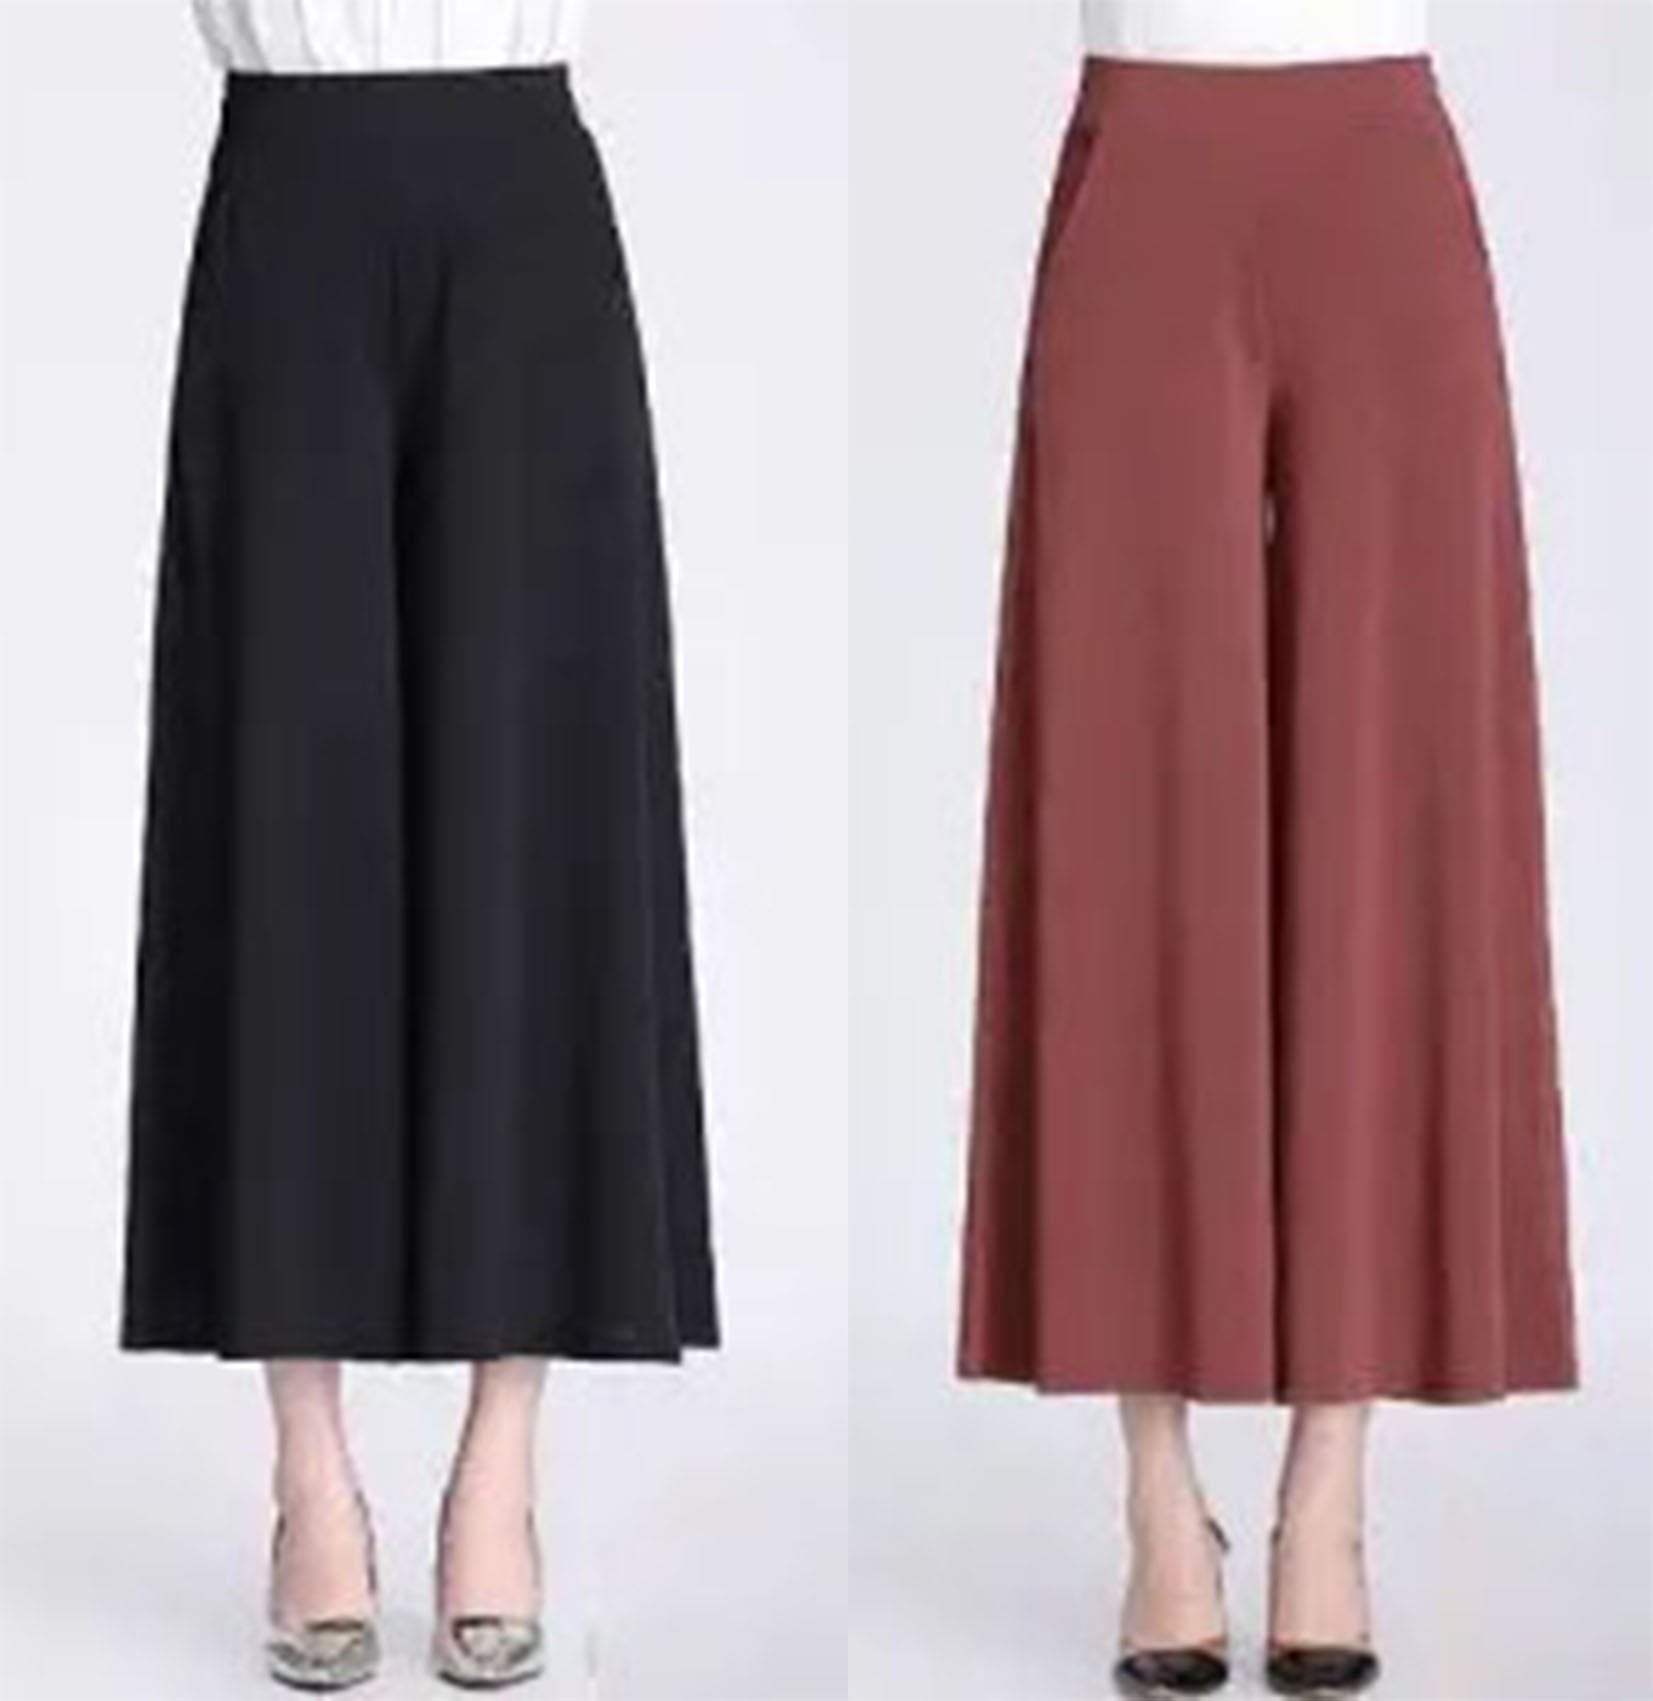 【Buy 1 Free 1】2020 new loose wide leg casual pants